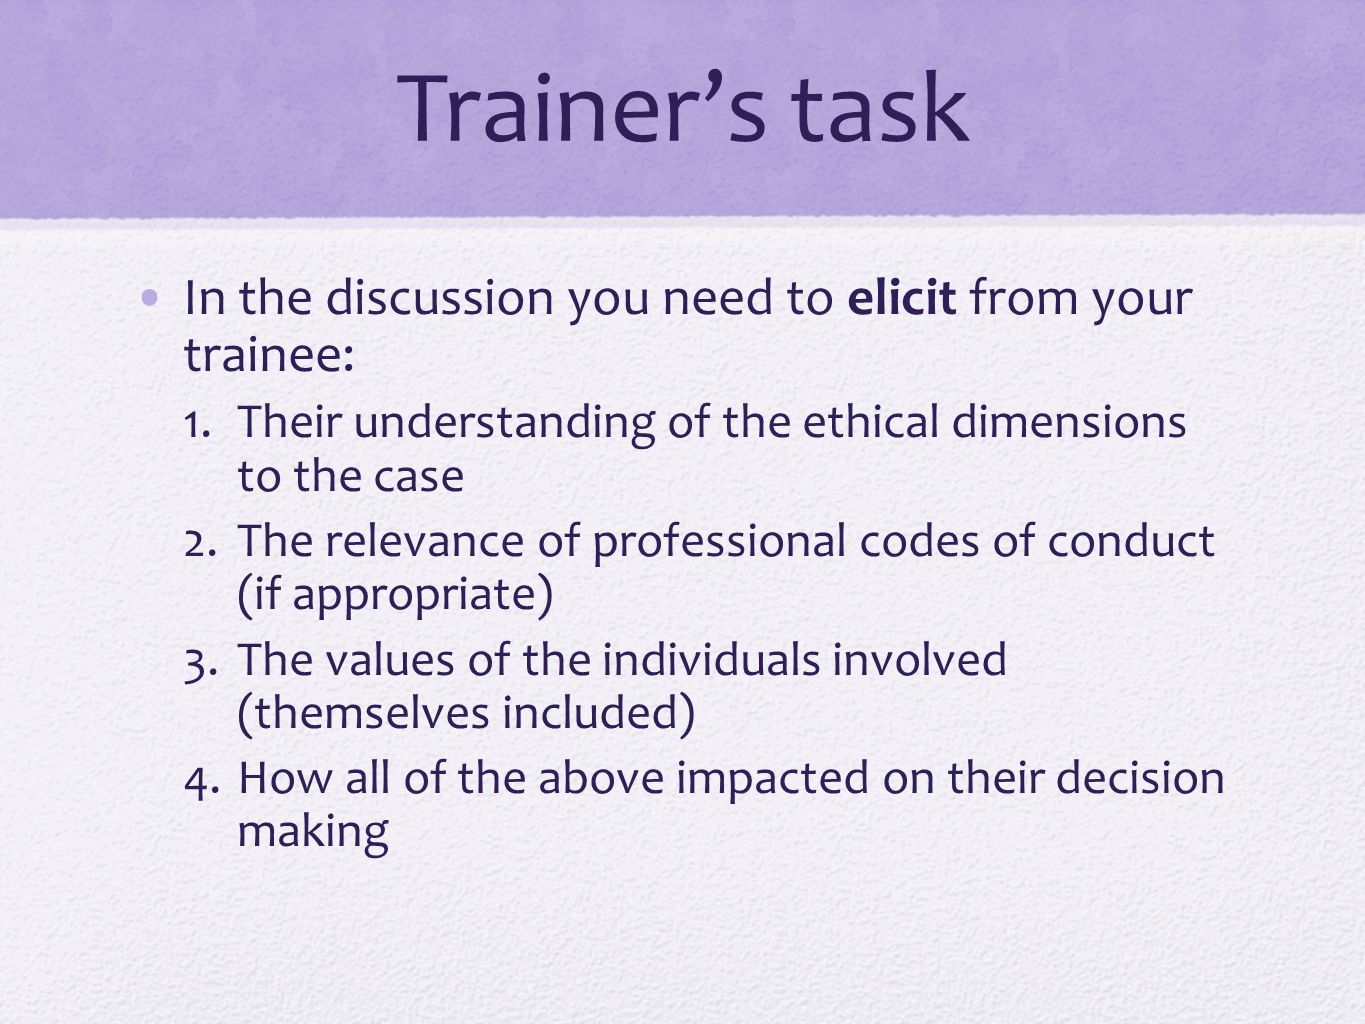 Trainer's task In the discussion you need to elicit from your trainee: